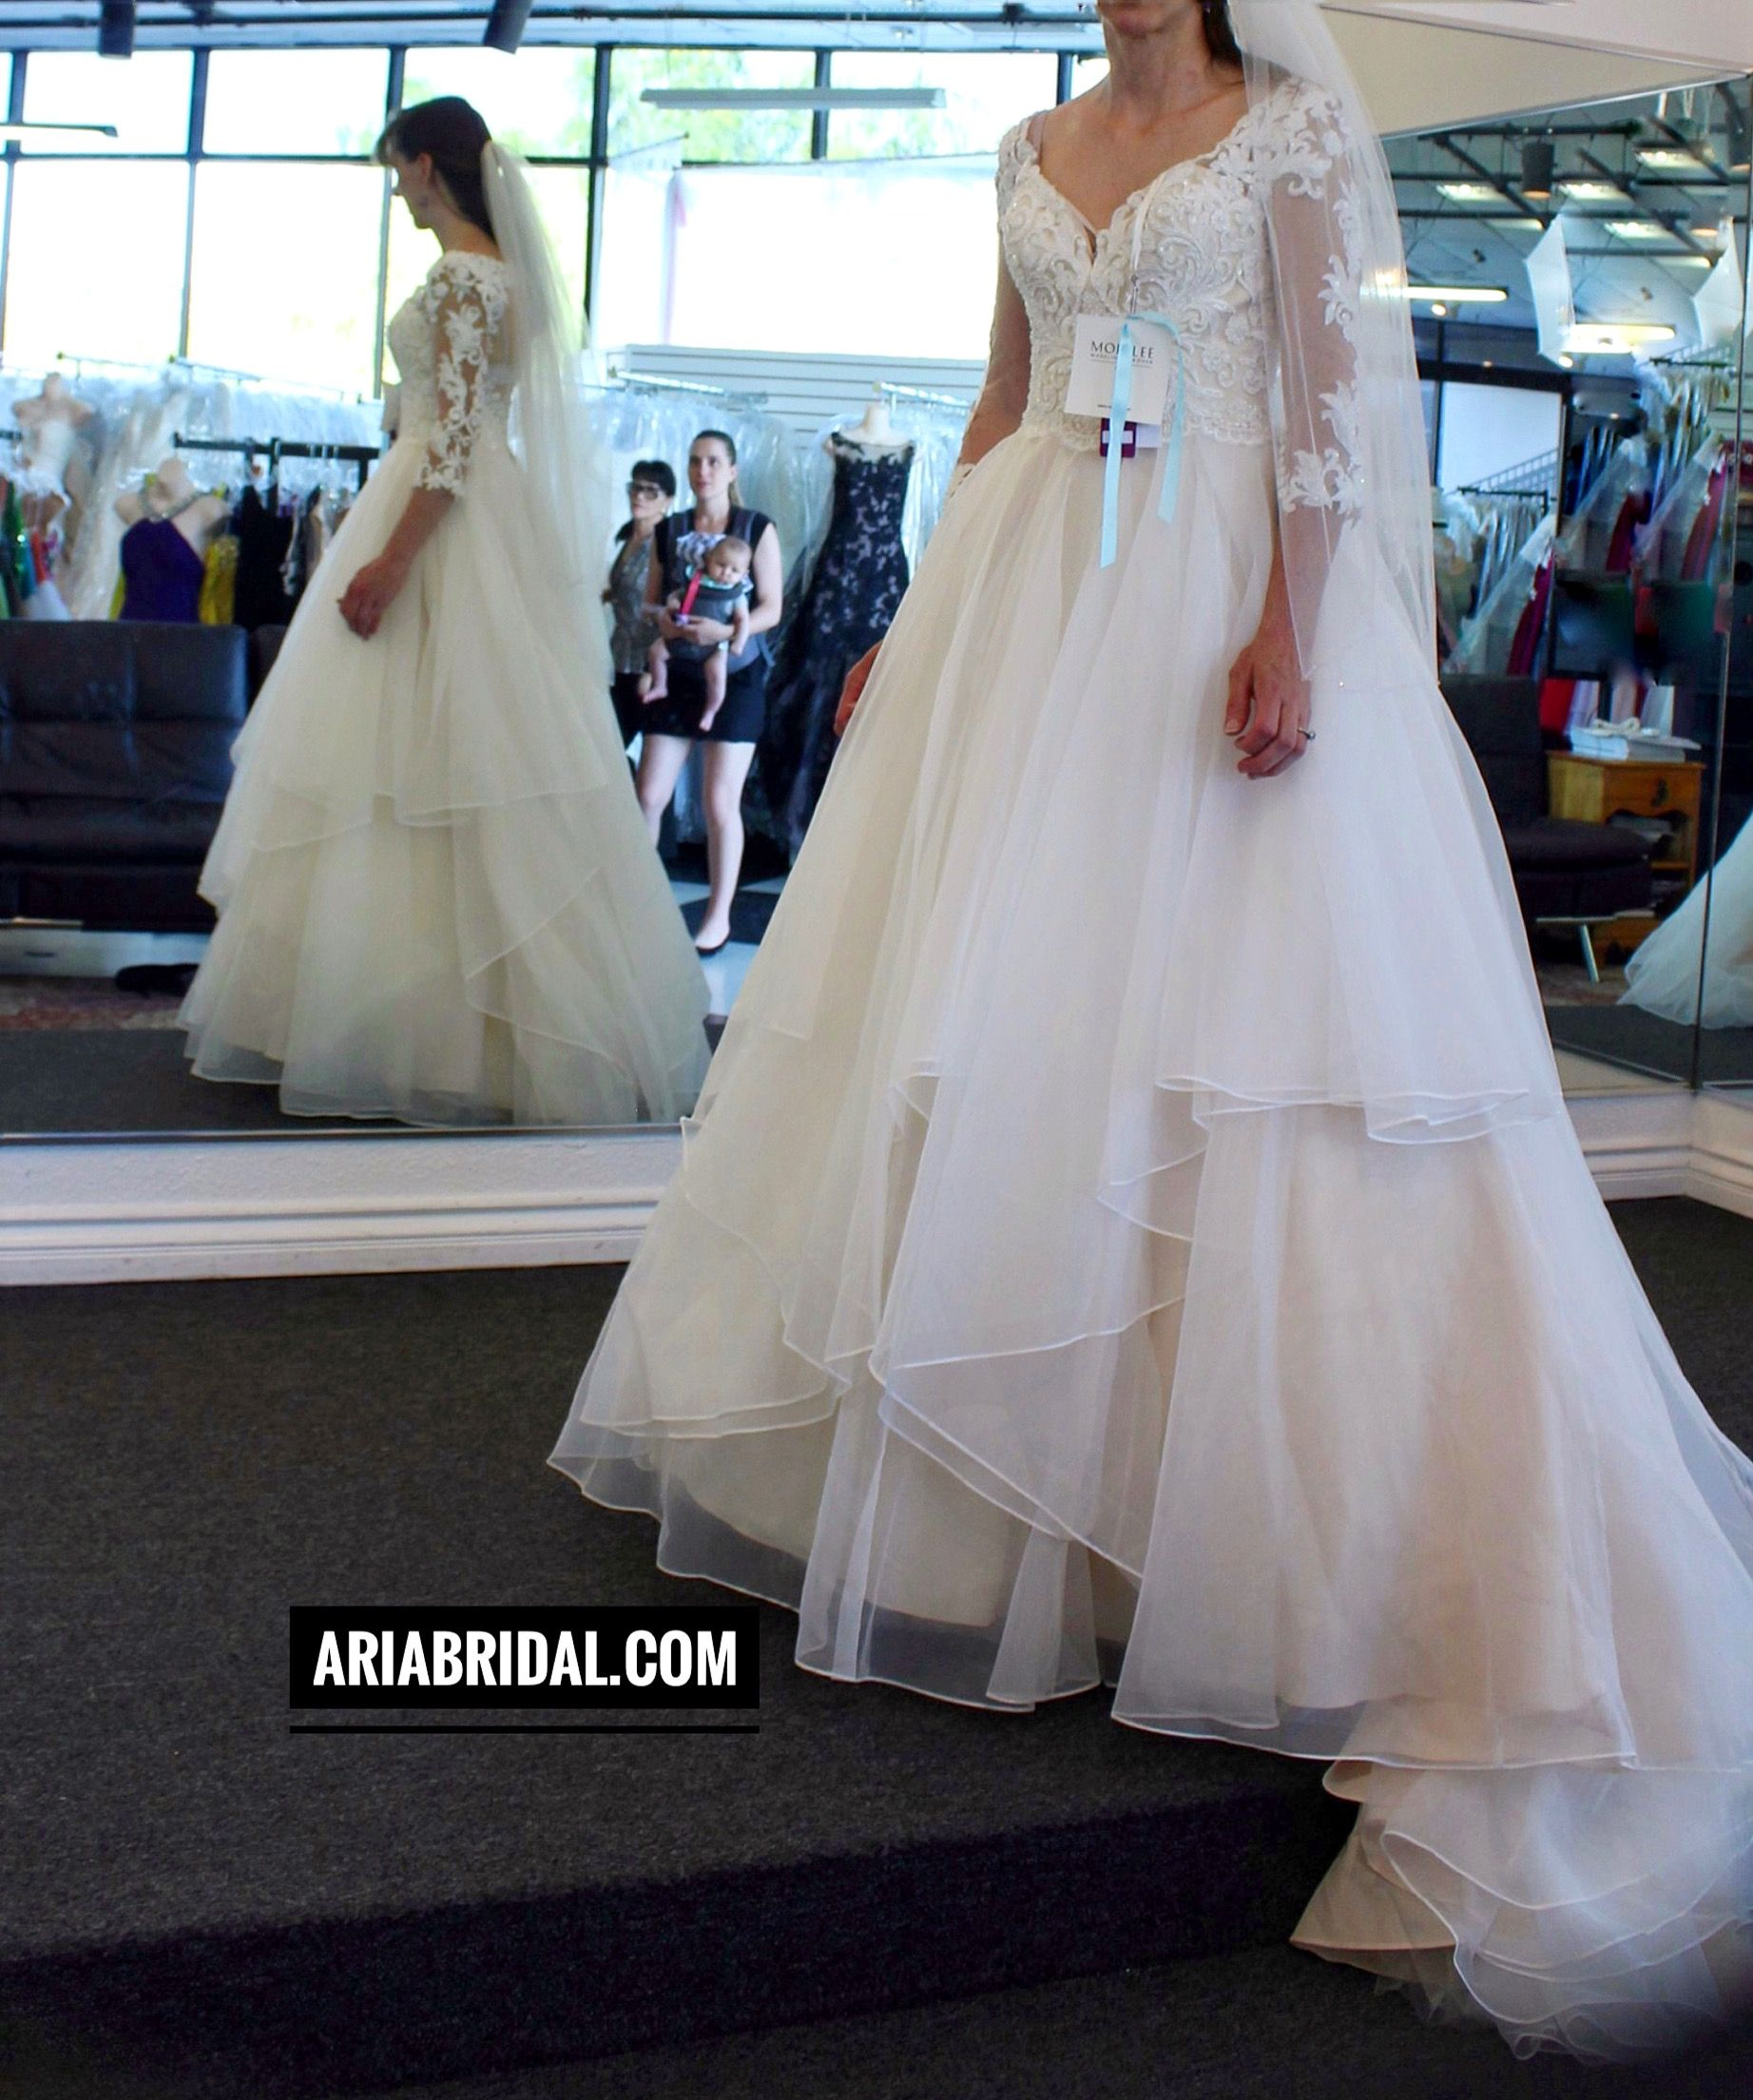 Wedding Dress at Aria Bridal in Escondido/ San Diego, California ...